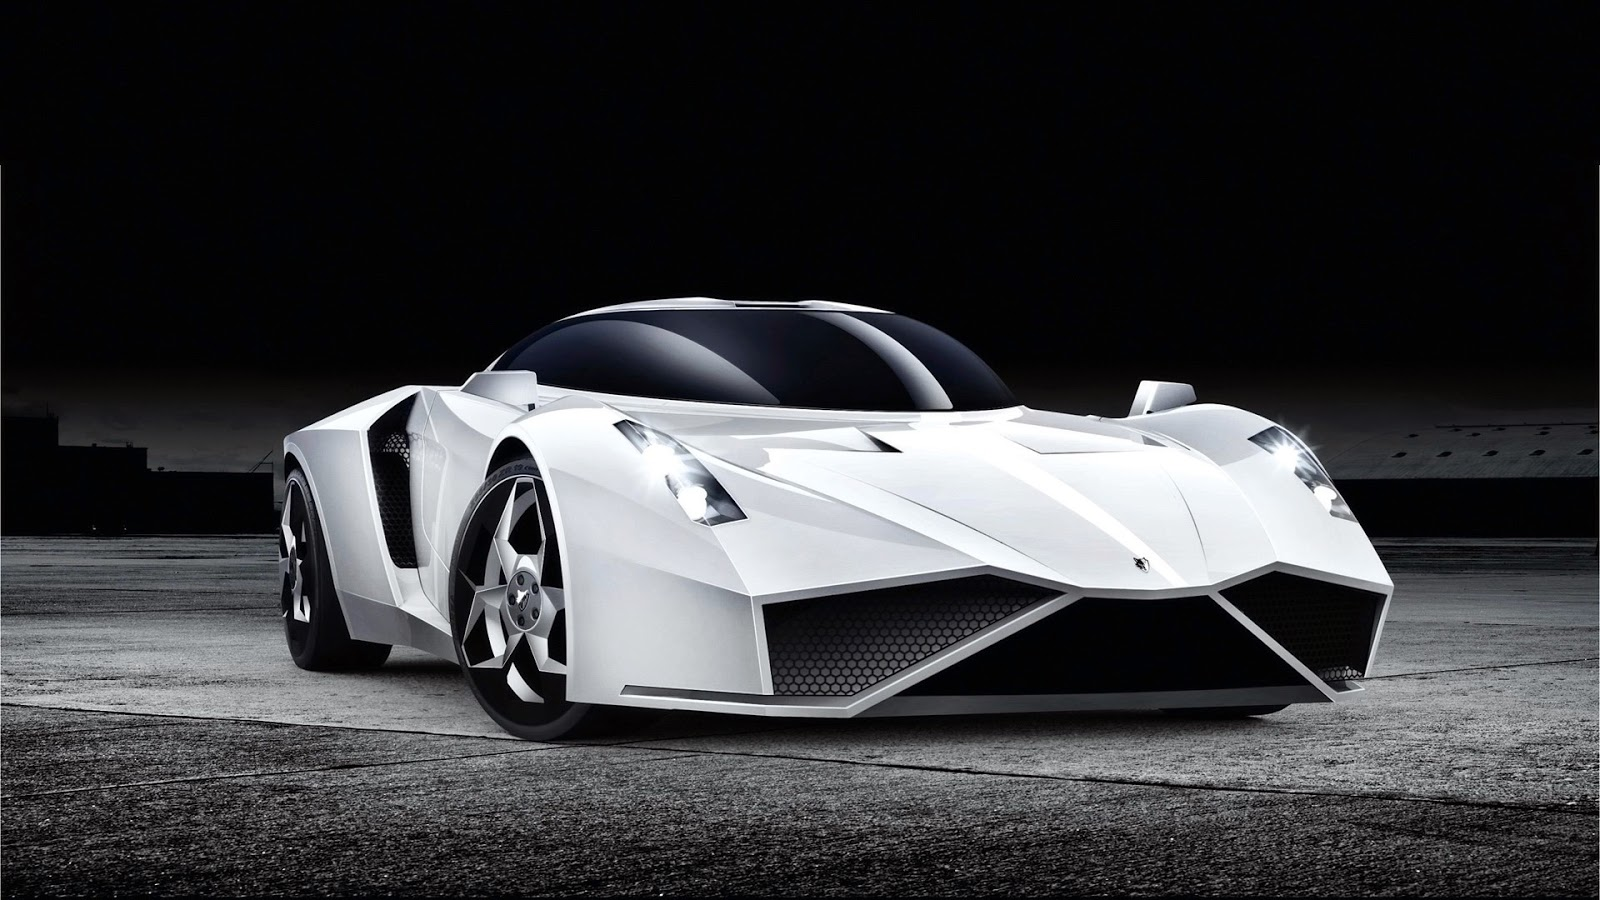 Wallpaper Super Car cool white color